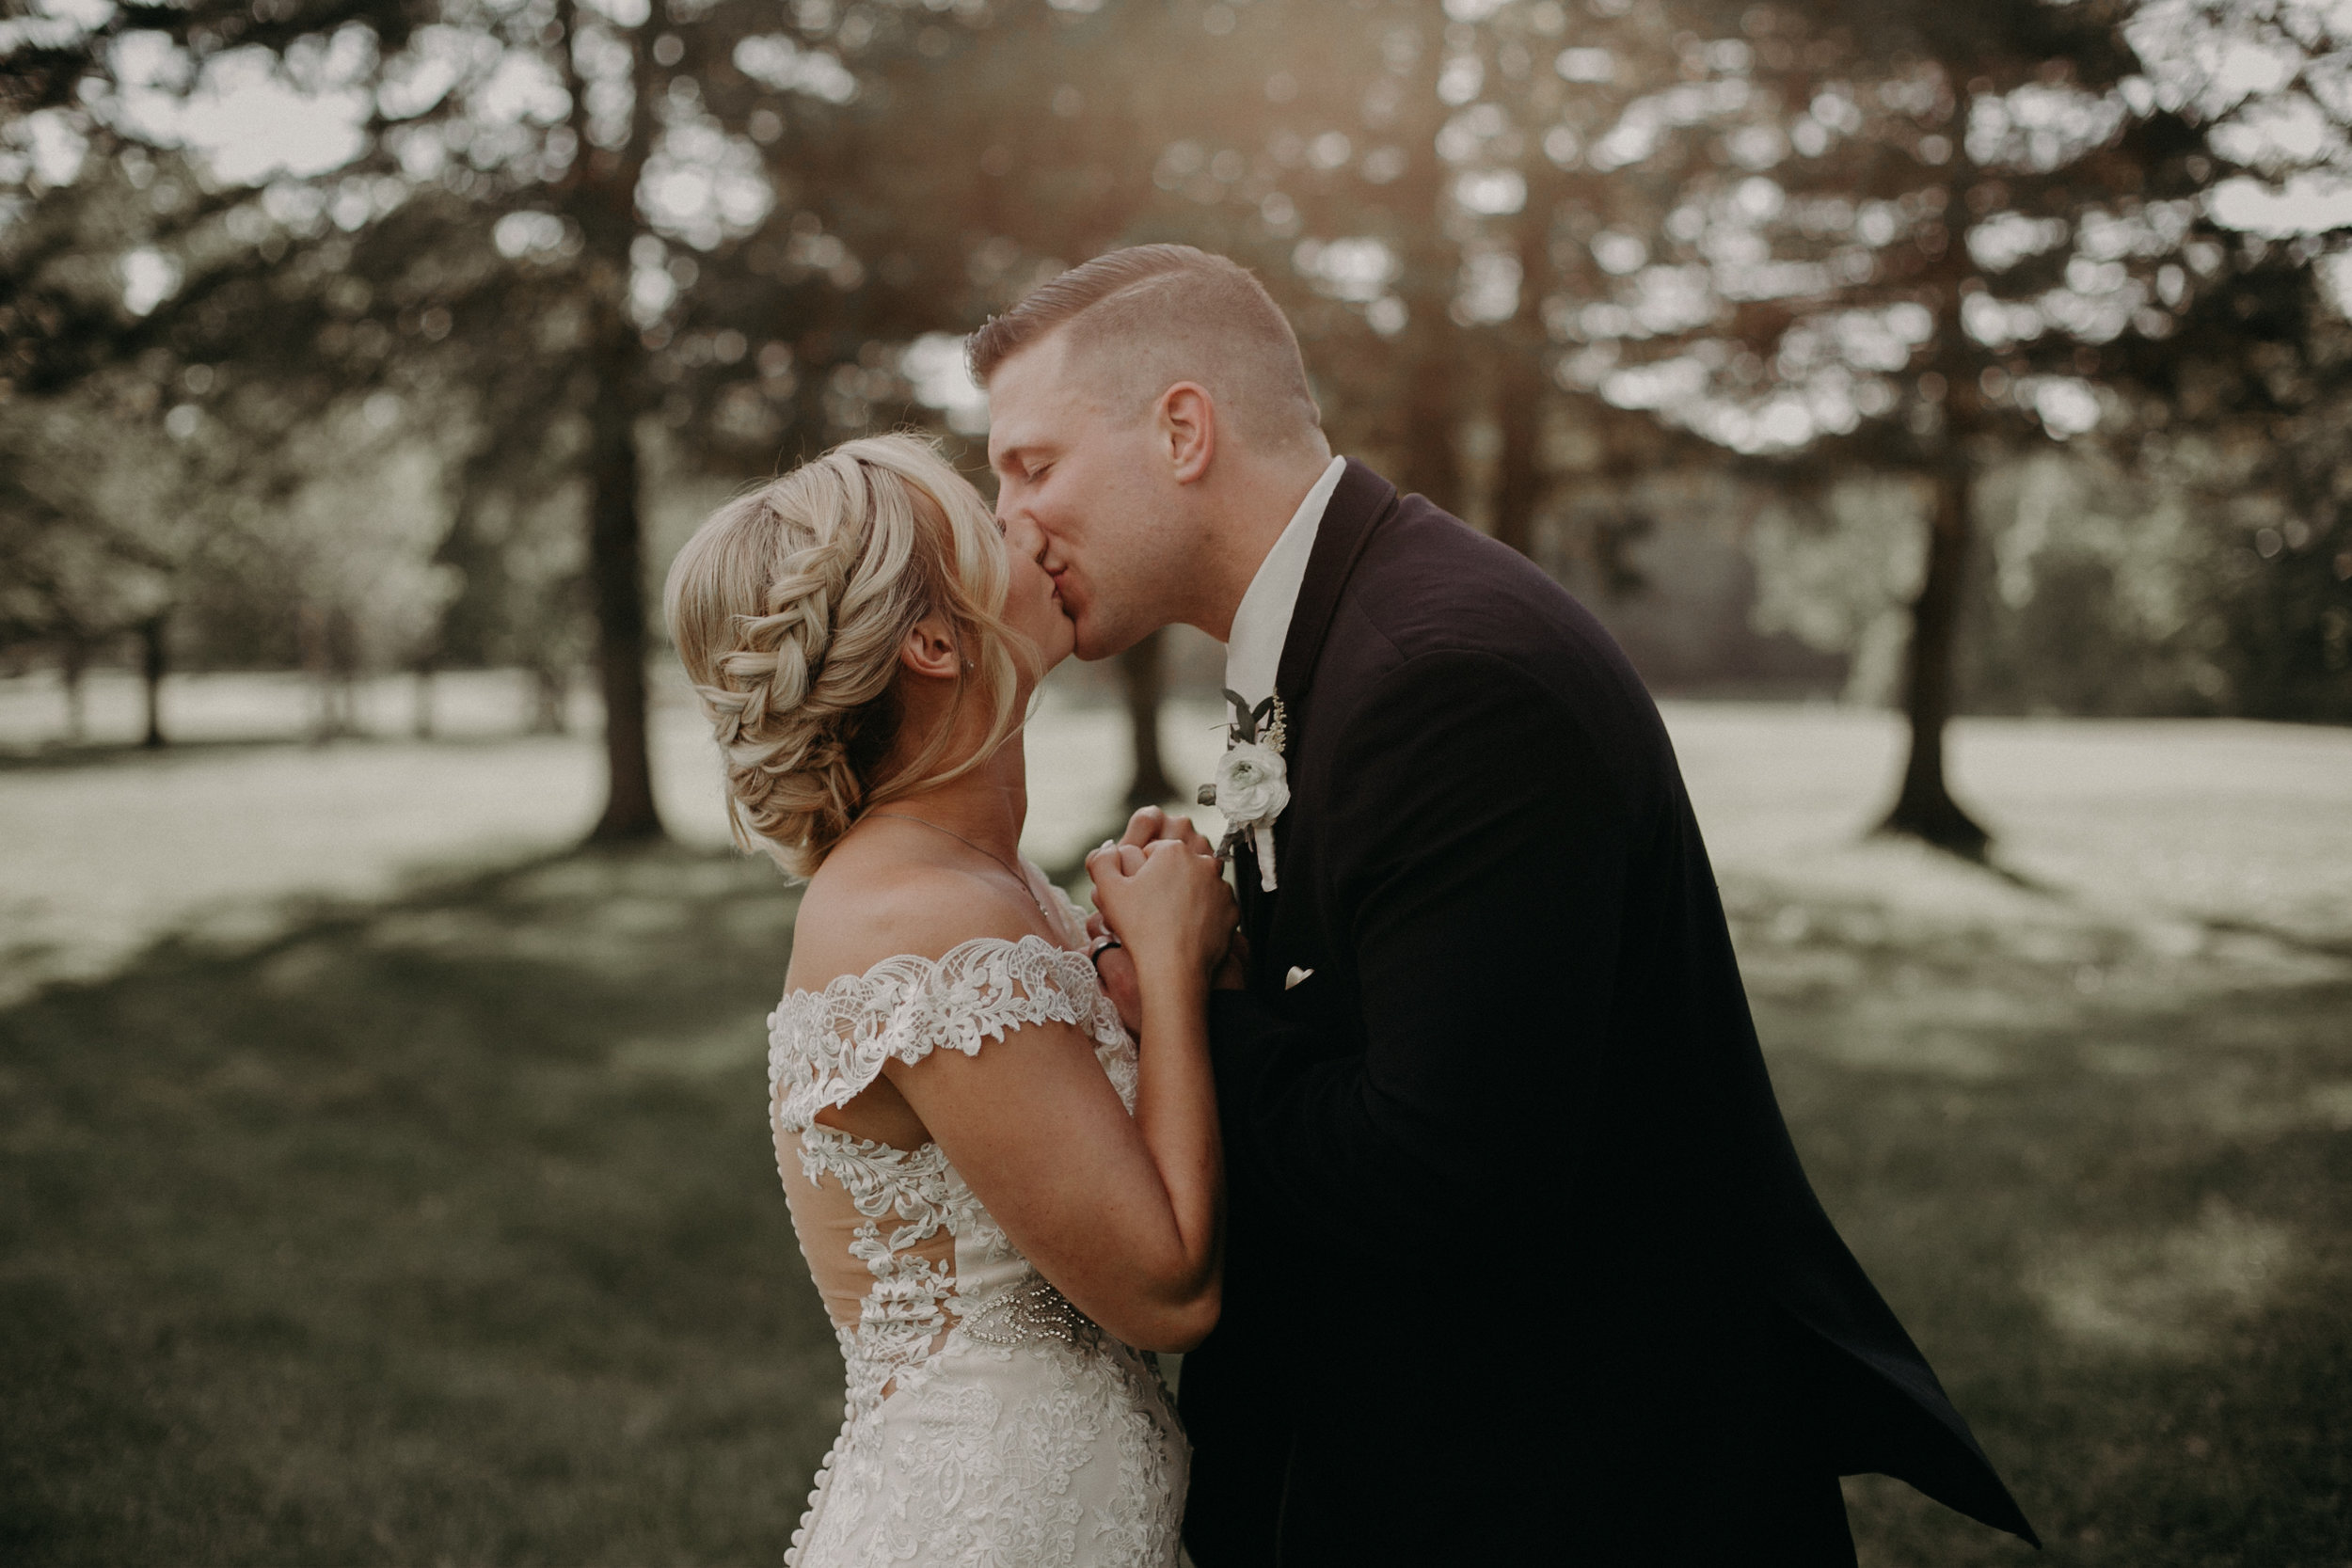 Andrea Wagner Photography captures sunset photos of wedding couple in Marshfield WI